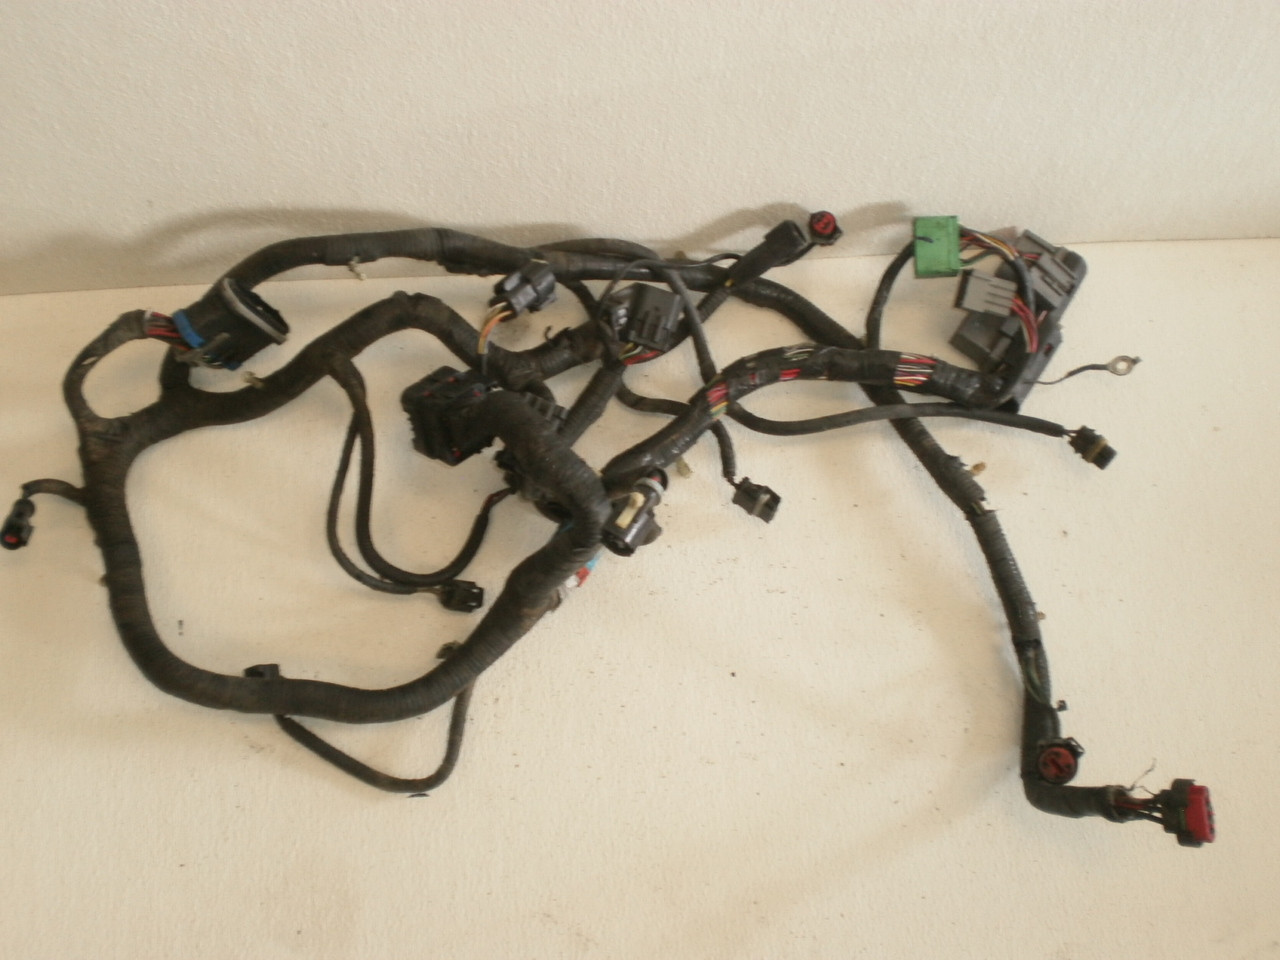 hight resolution of 2001 mustang wiring harness wiring diagram sys 2001 mustang alternator wiring harness 01 mustang wiring harness